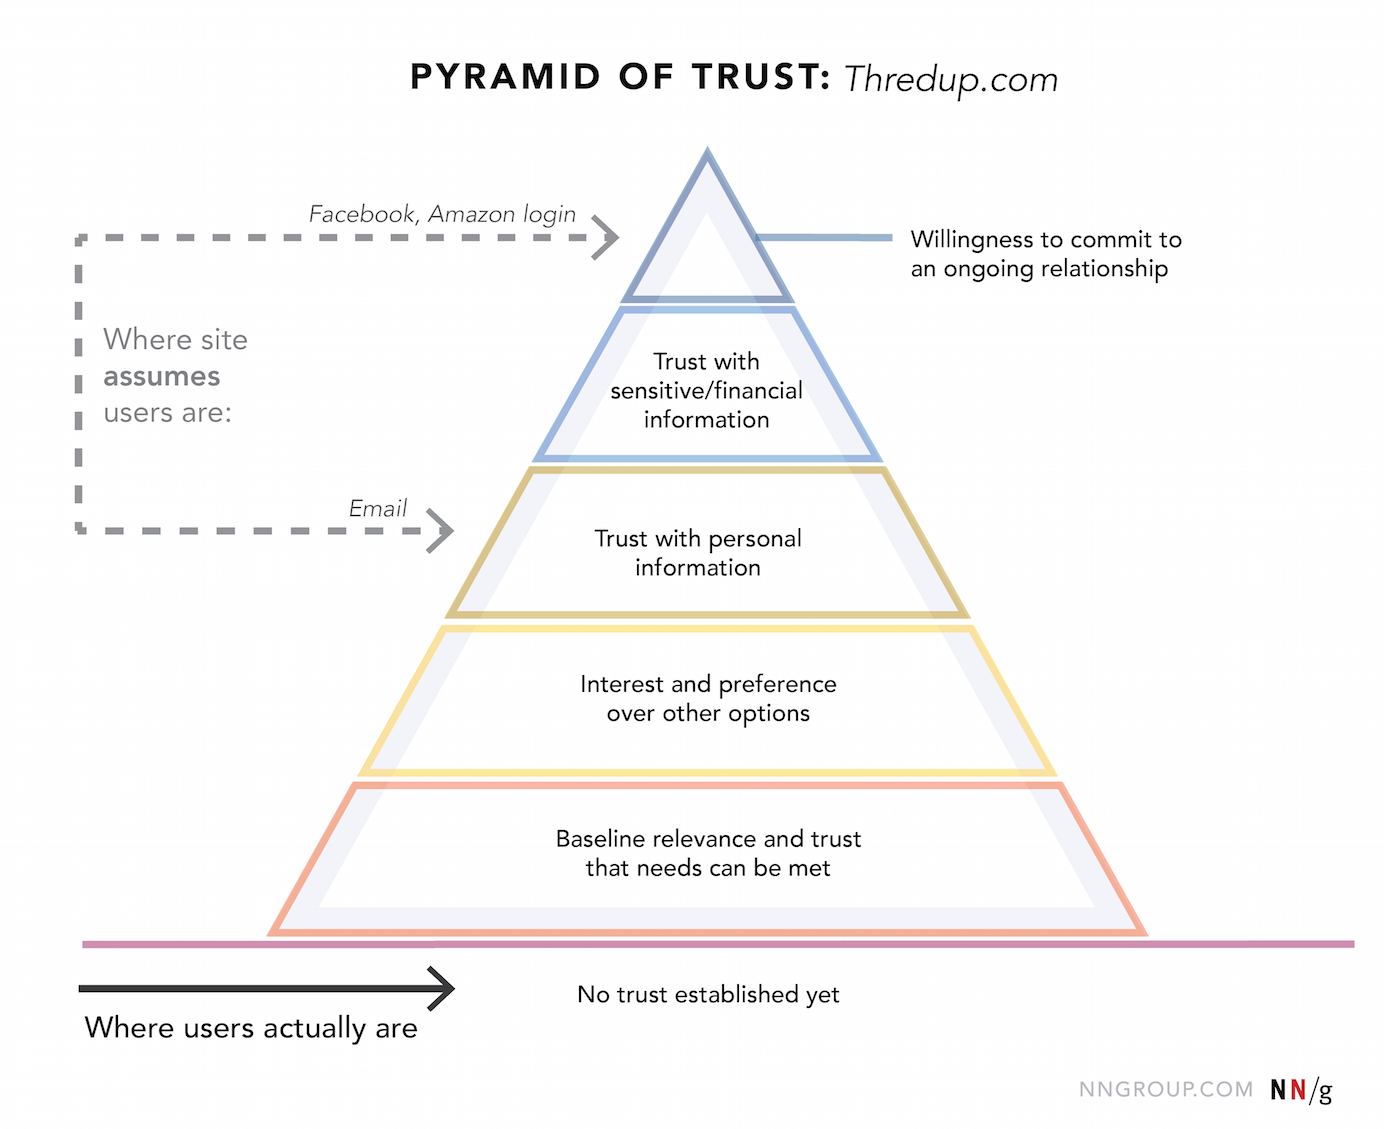 The pyramid of trust for Thredup.com shows where the site assumes users are compared to where they actually are.